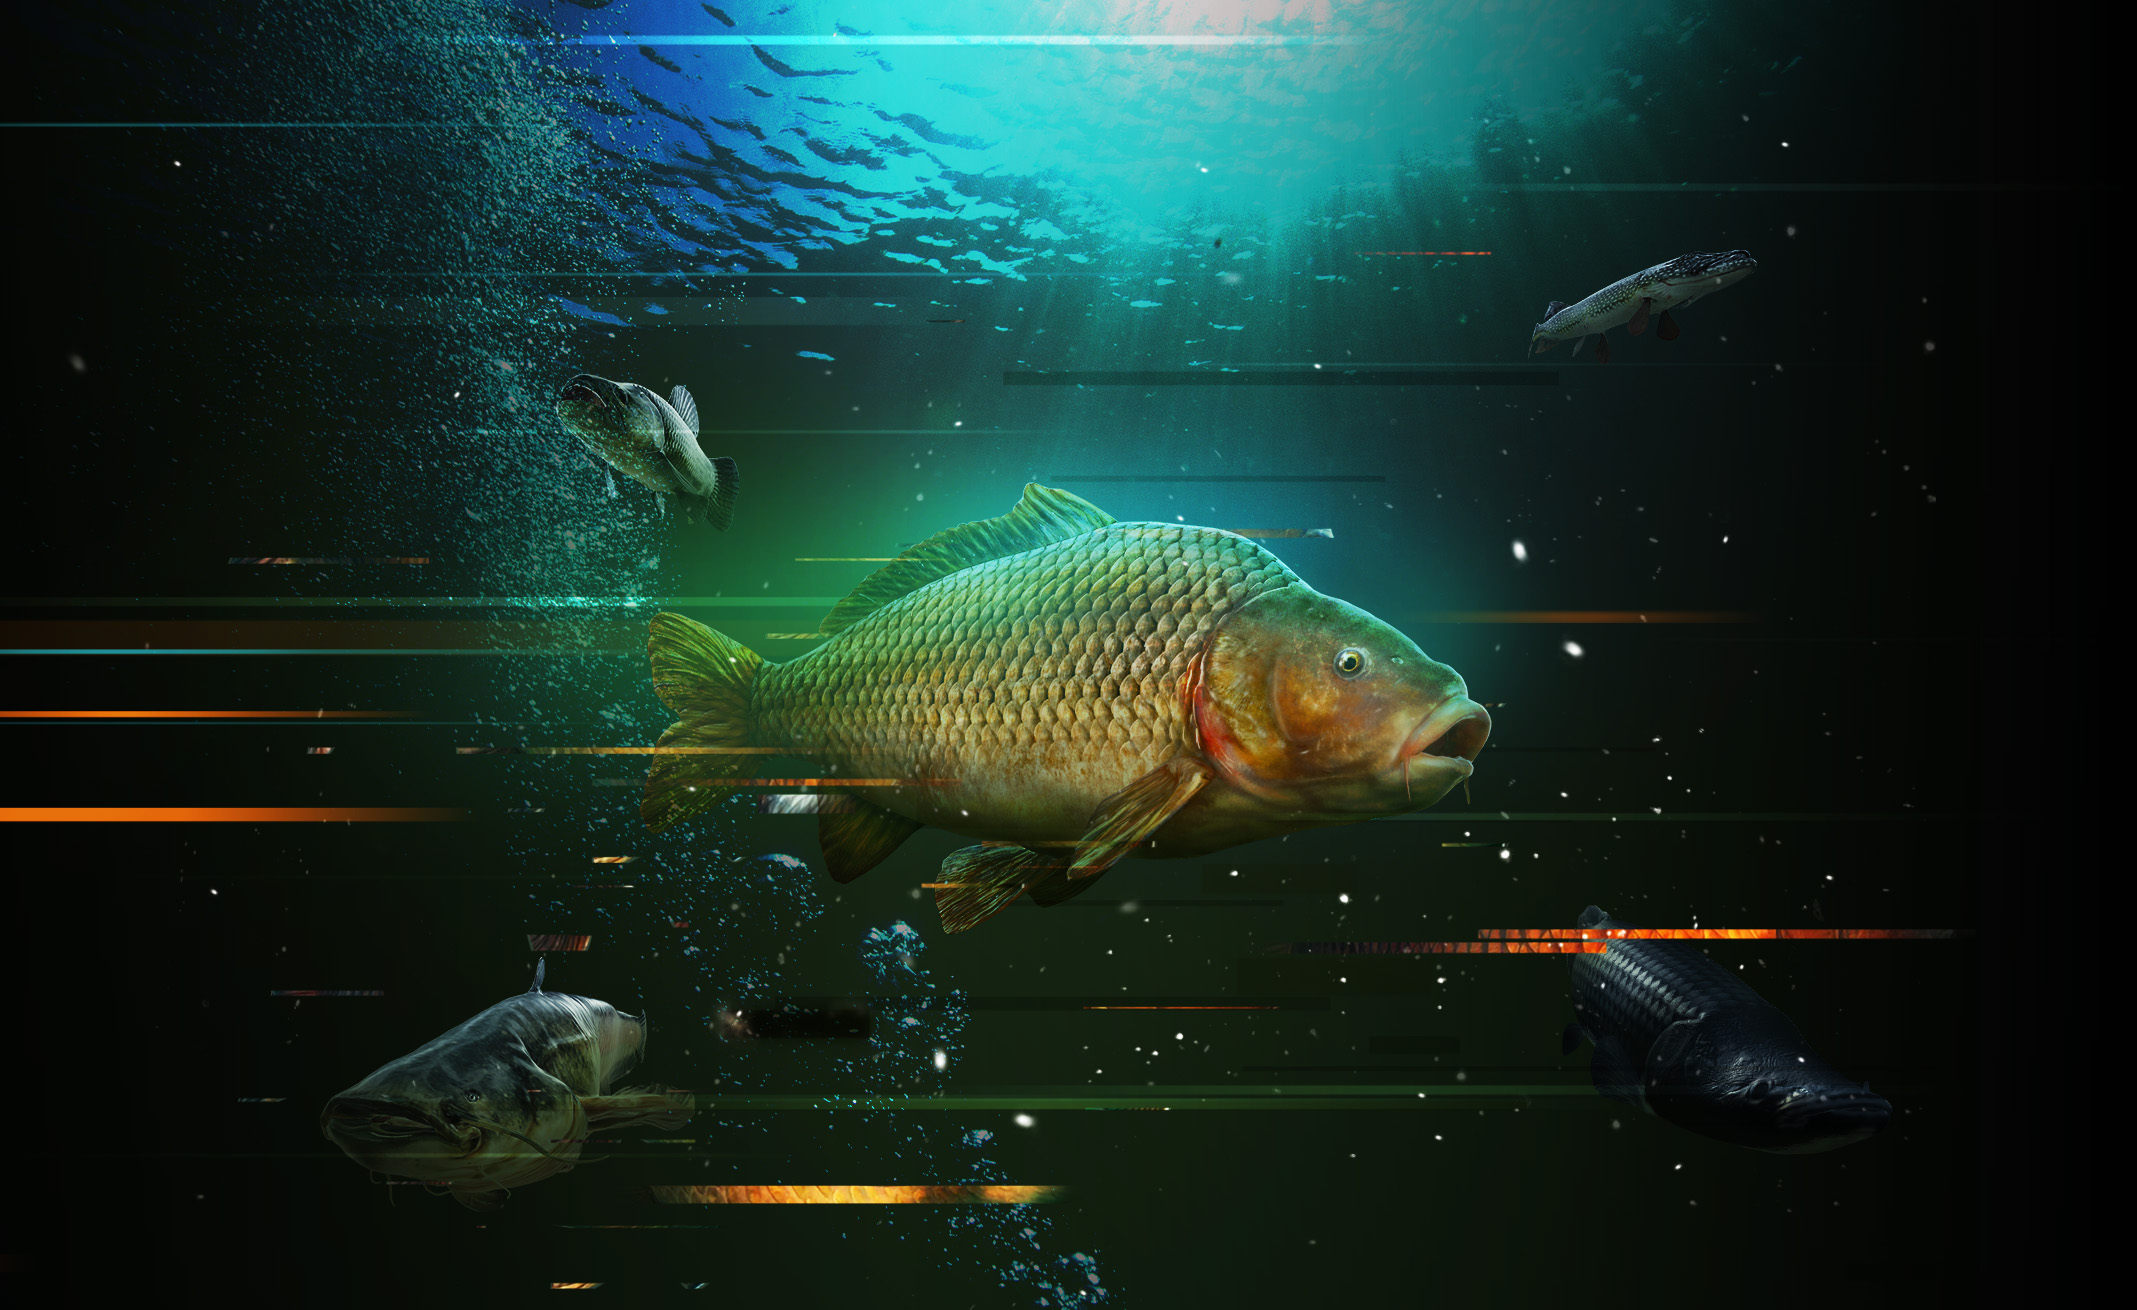 divide_fish_v6_nologo